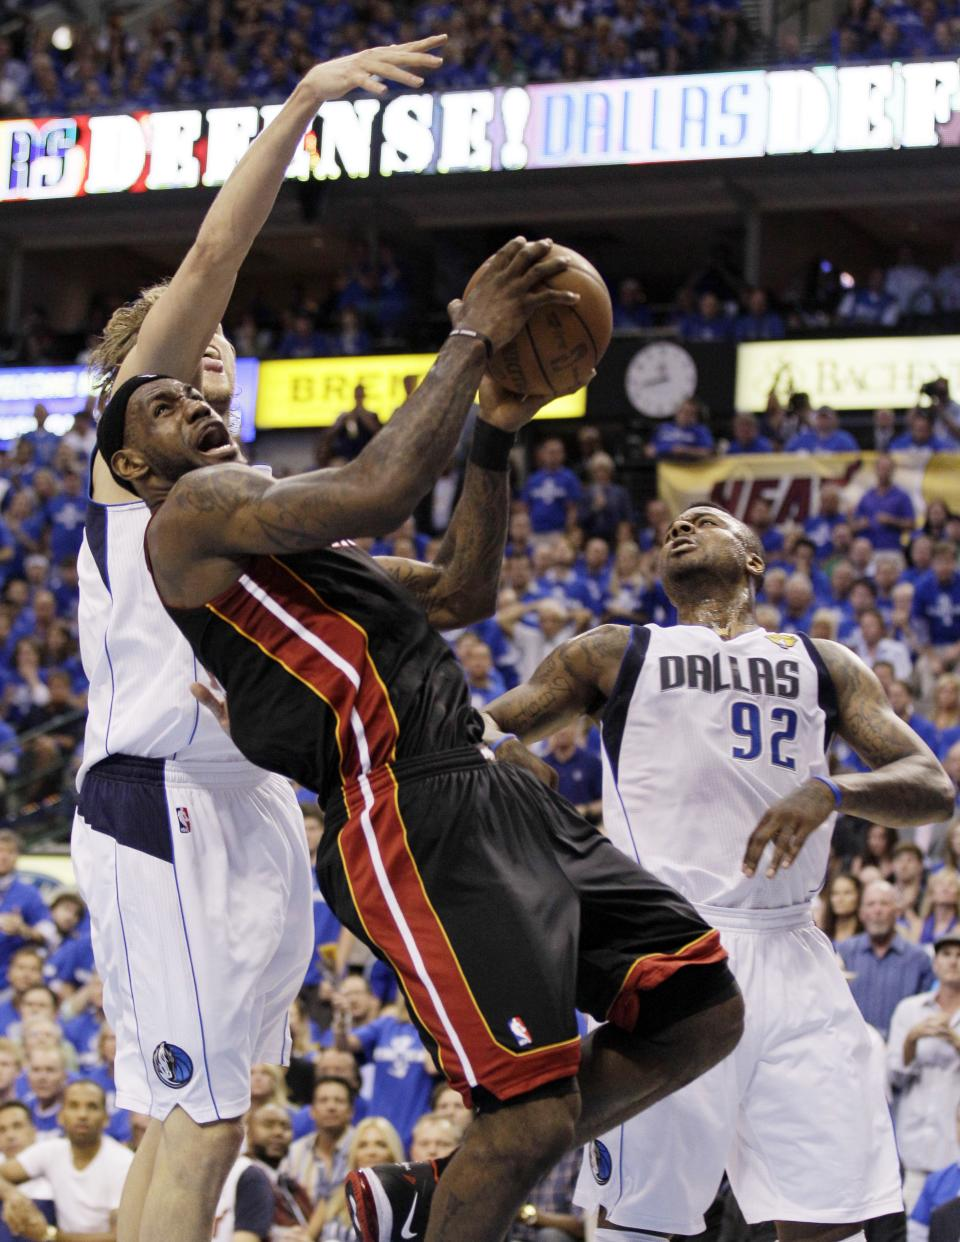 Miami Heat's LeBron James drives past Dallas Mavericks' Dirk Nowitzki and DeShawn Stevenson (92) during the first half of Game 5 of the NBA Finals basketball game Thursday, June 9, 2011, in Dallas. (AP Photo/Mark Humphrey)